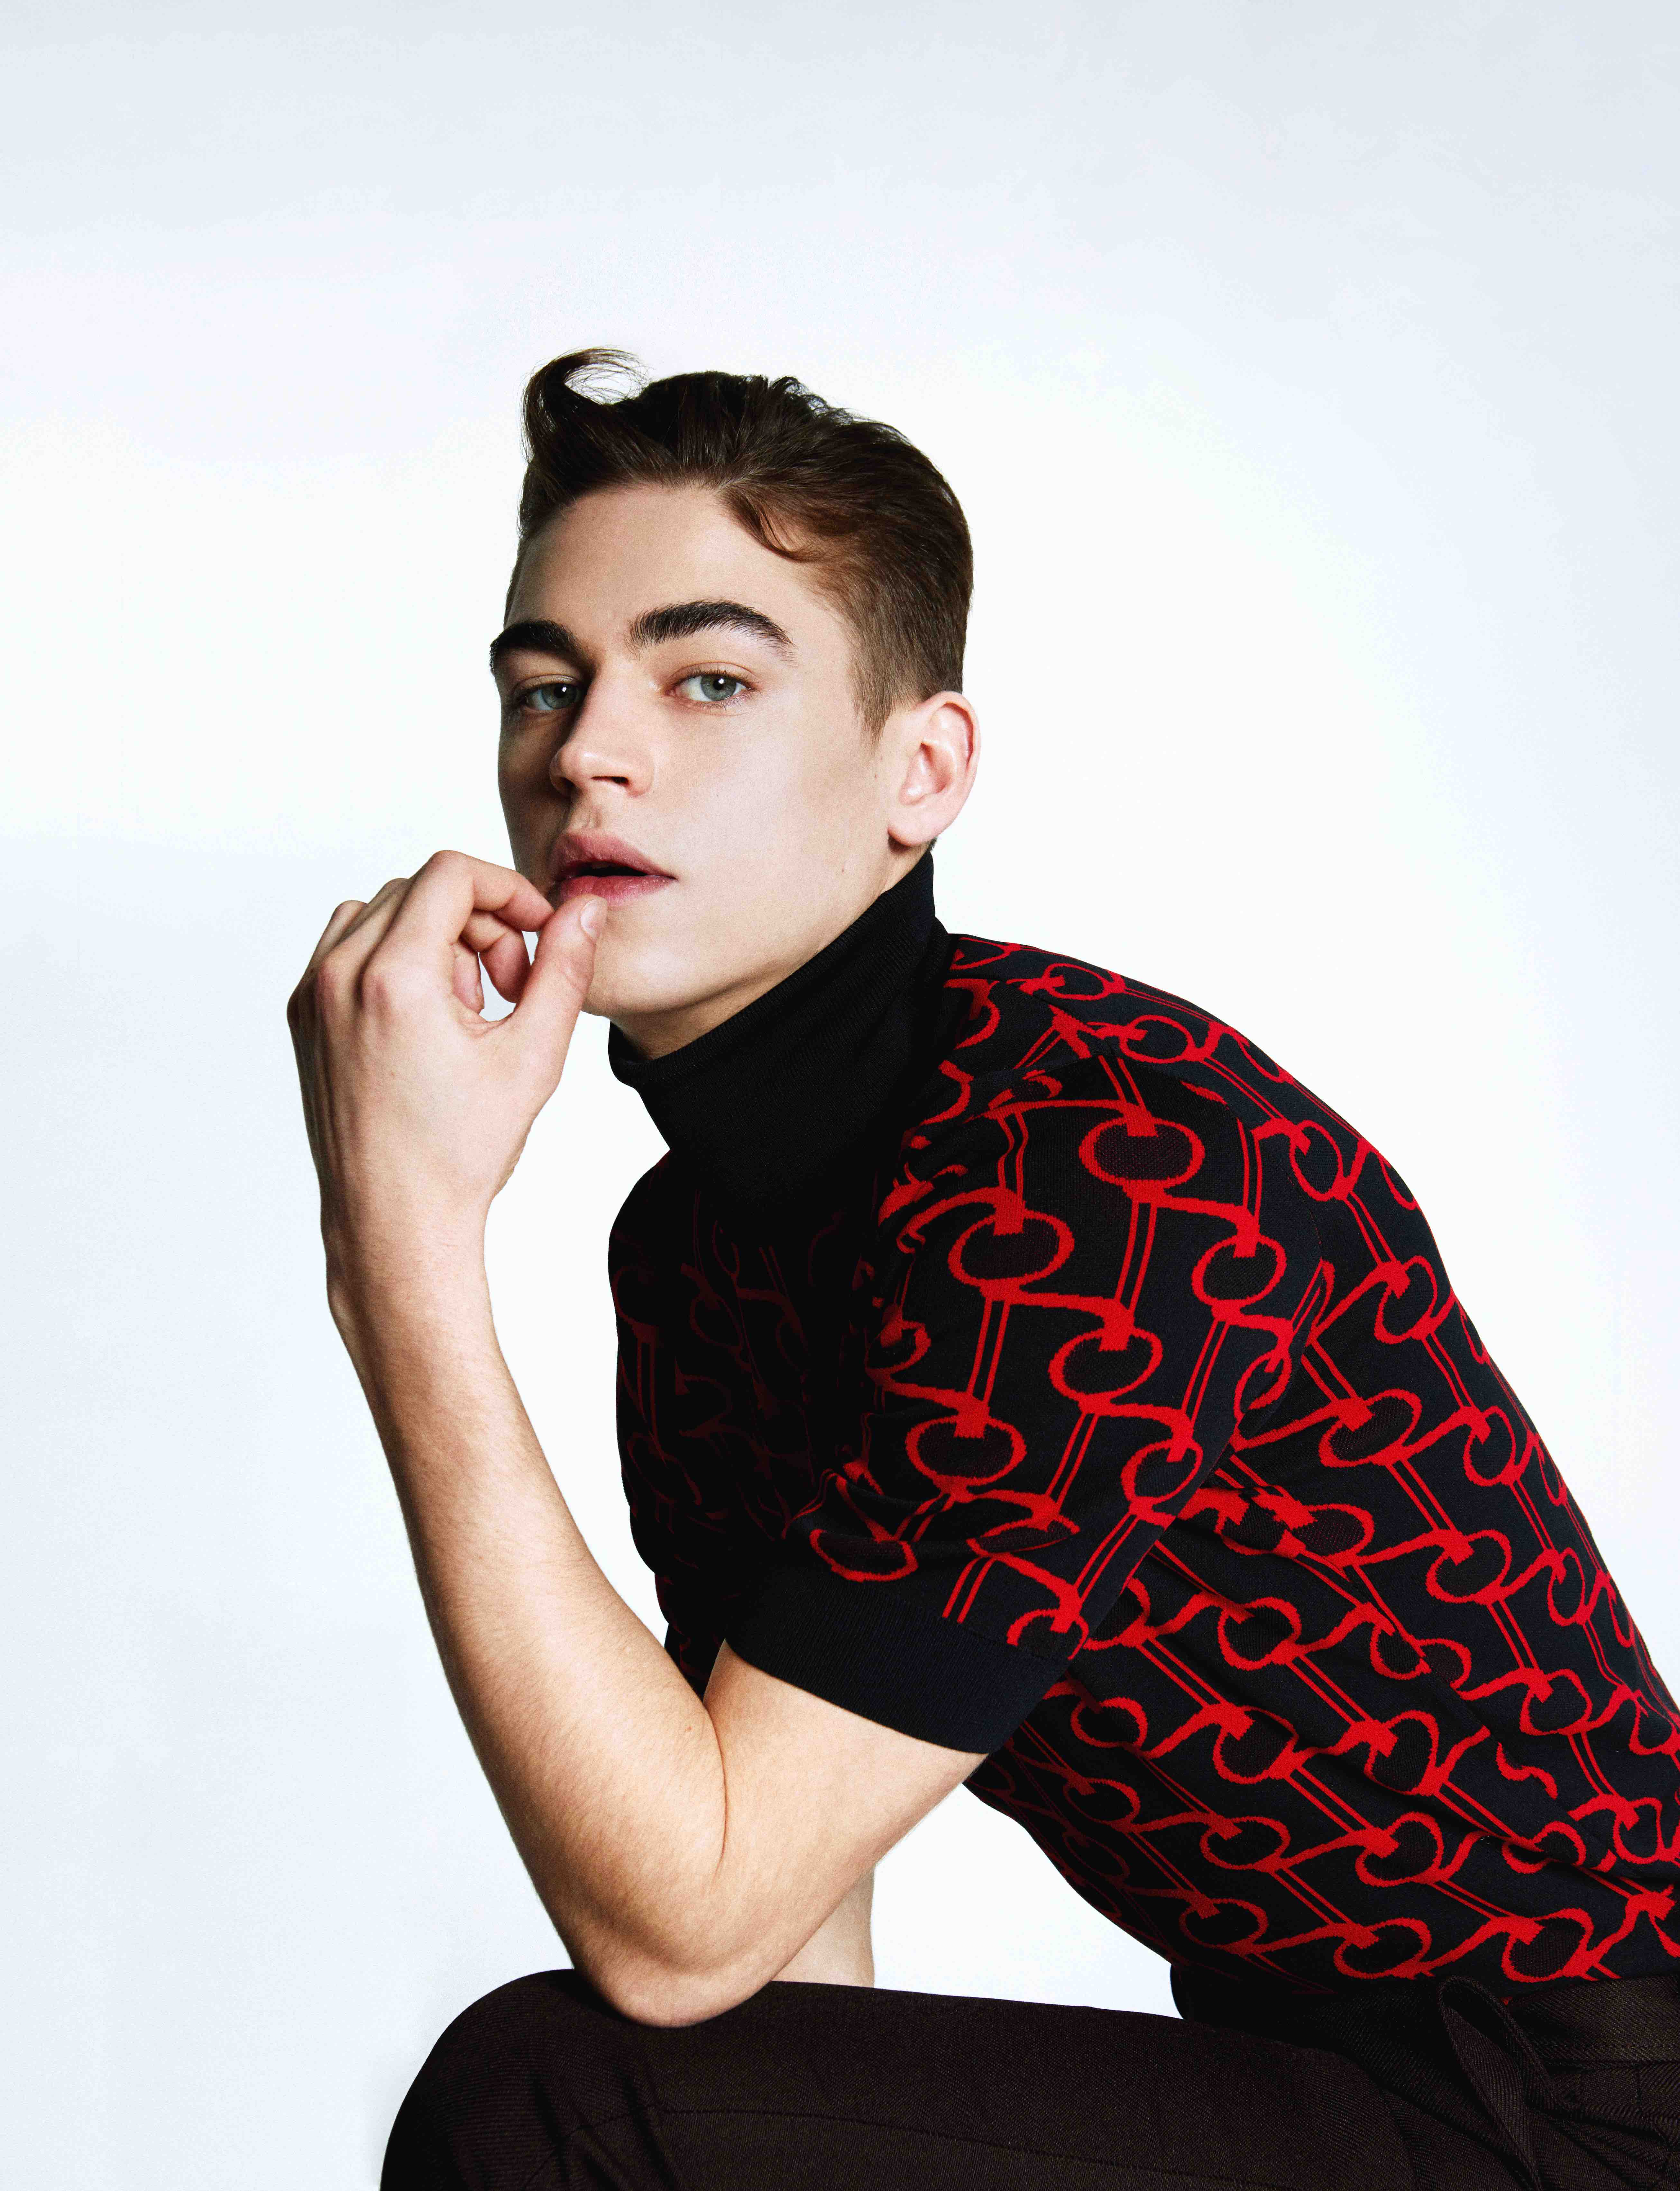 Hero Fiennes Tiffin in the Spring 19 issue of Wonderland polo top